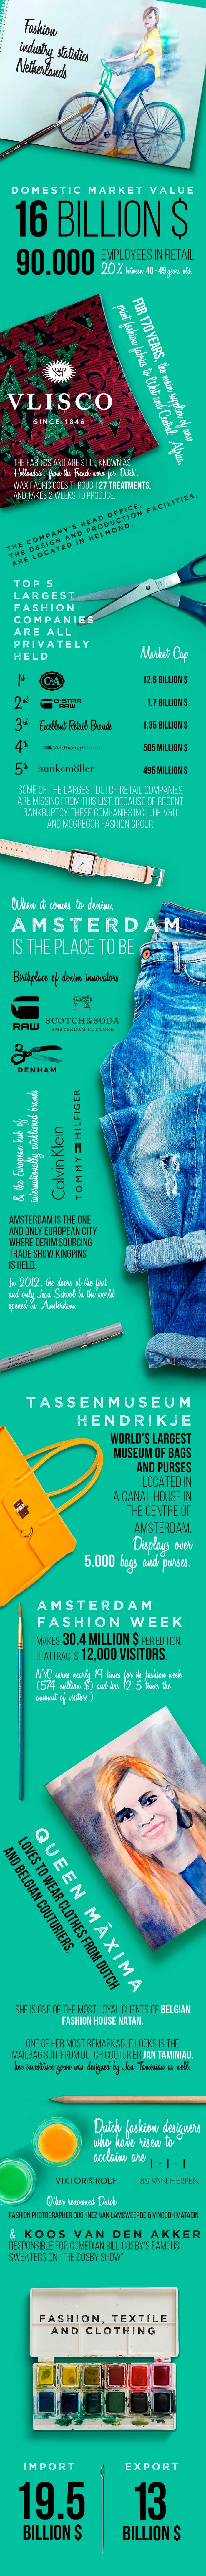 Fashion industry statistics infographics part 5: The Netherlands